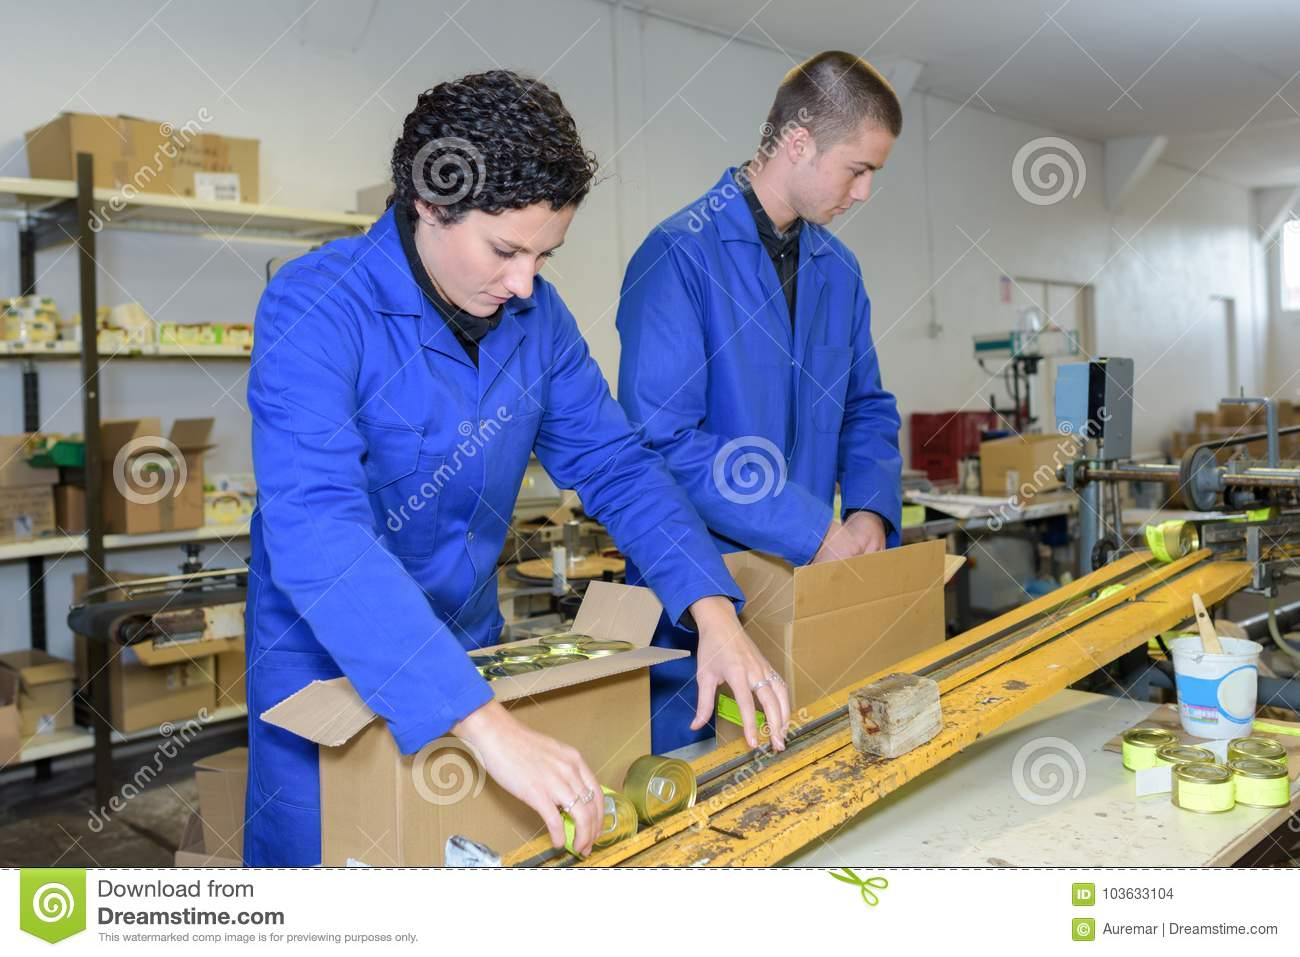 Young workers packing products off factory production line